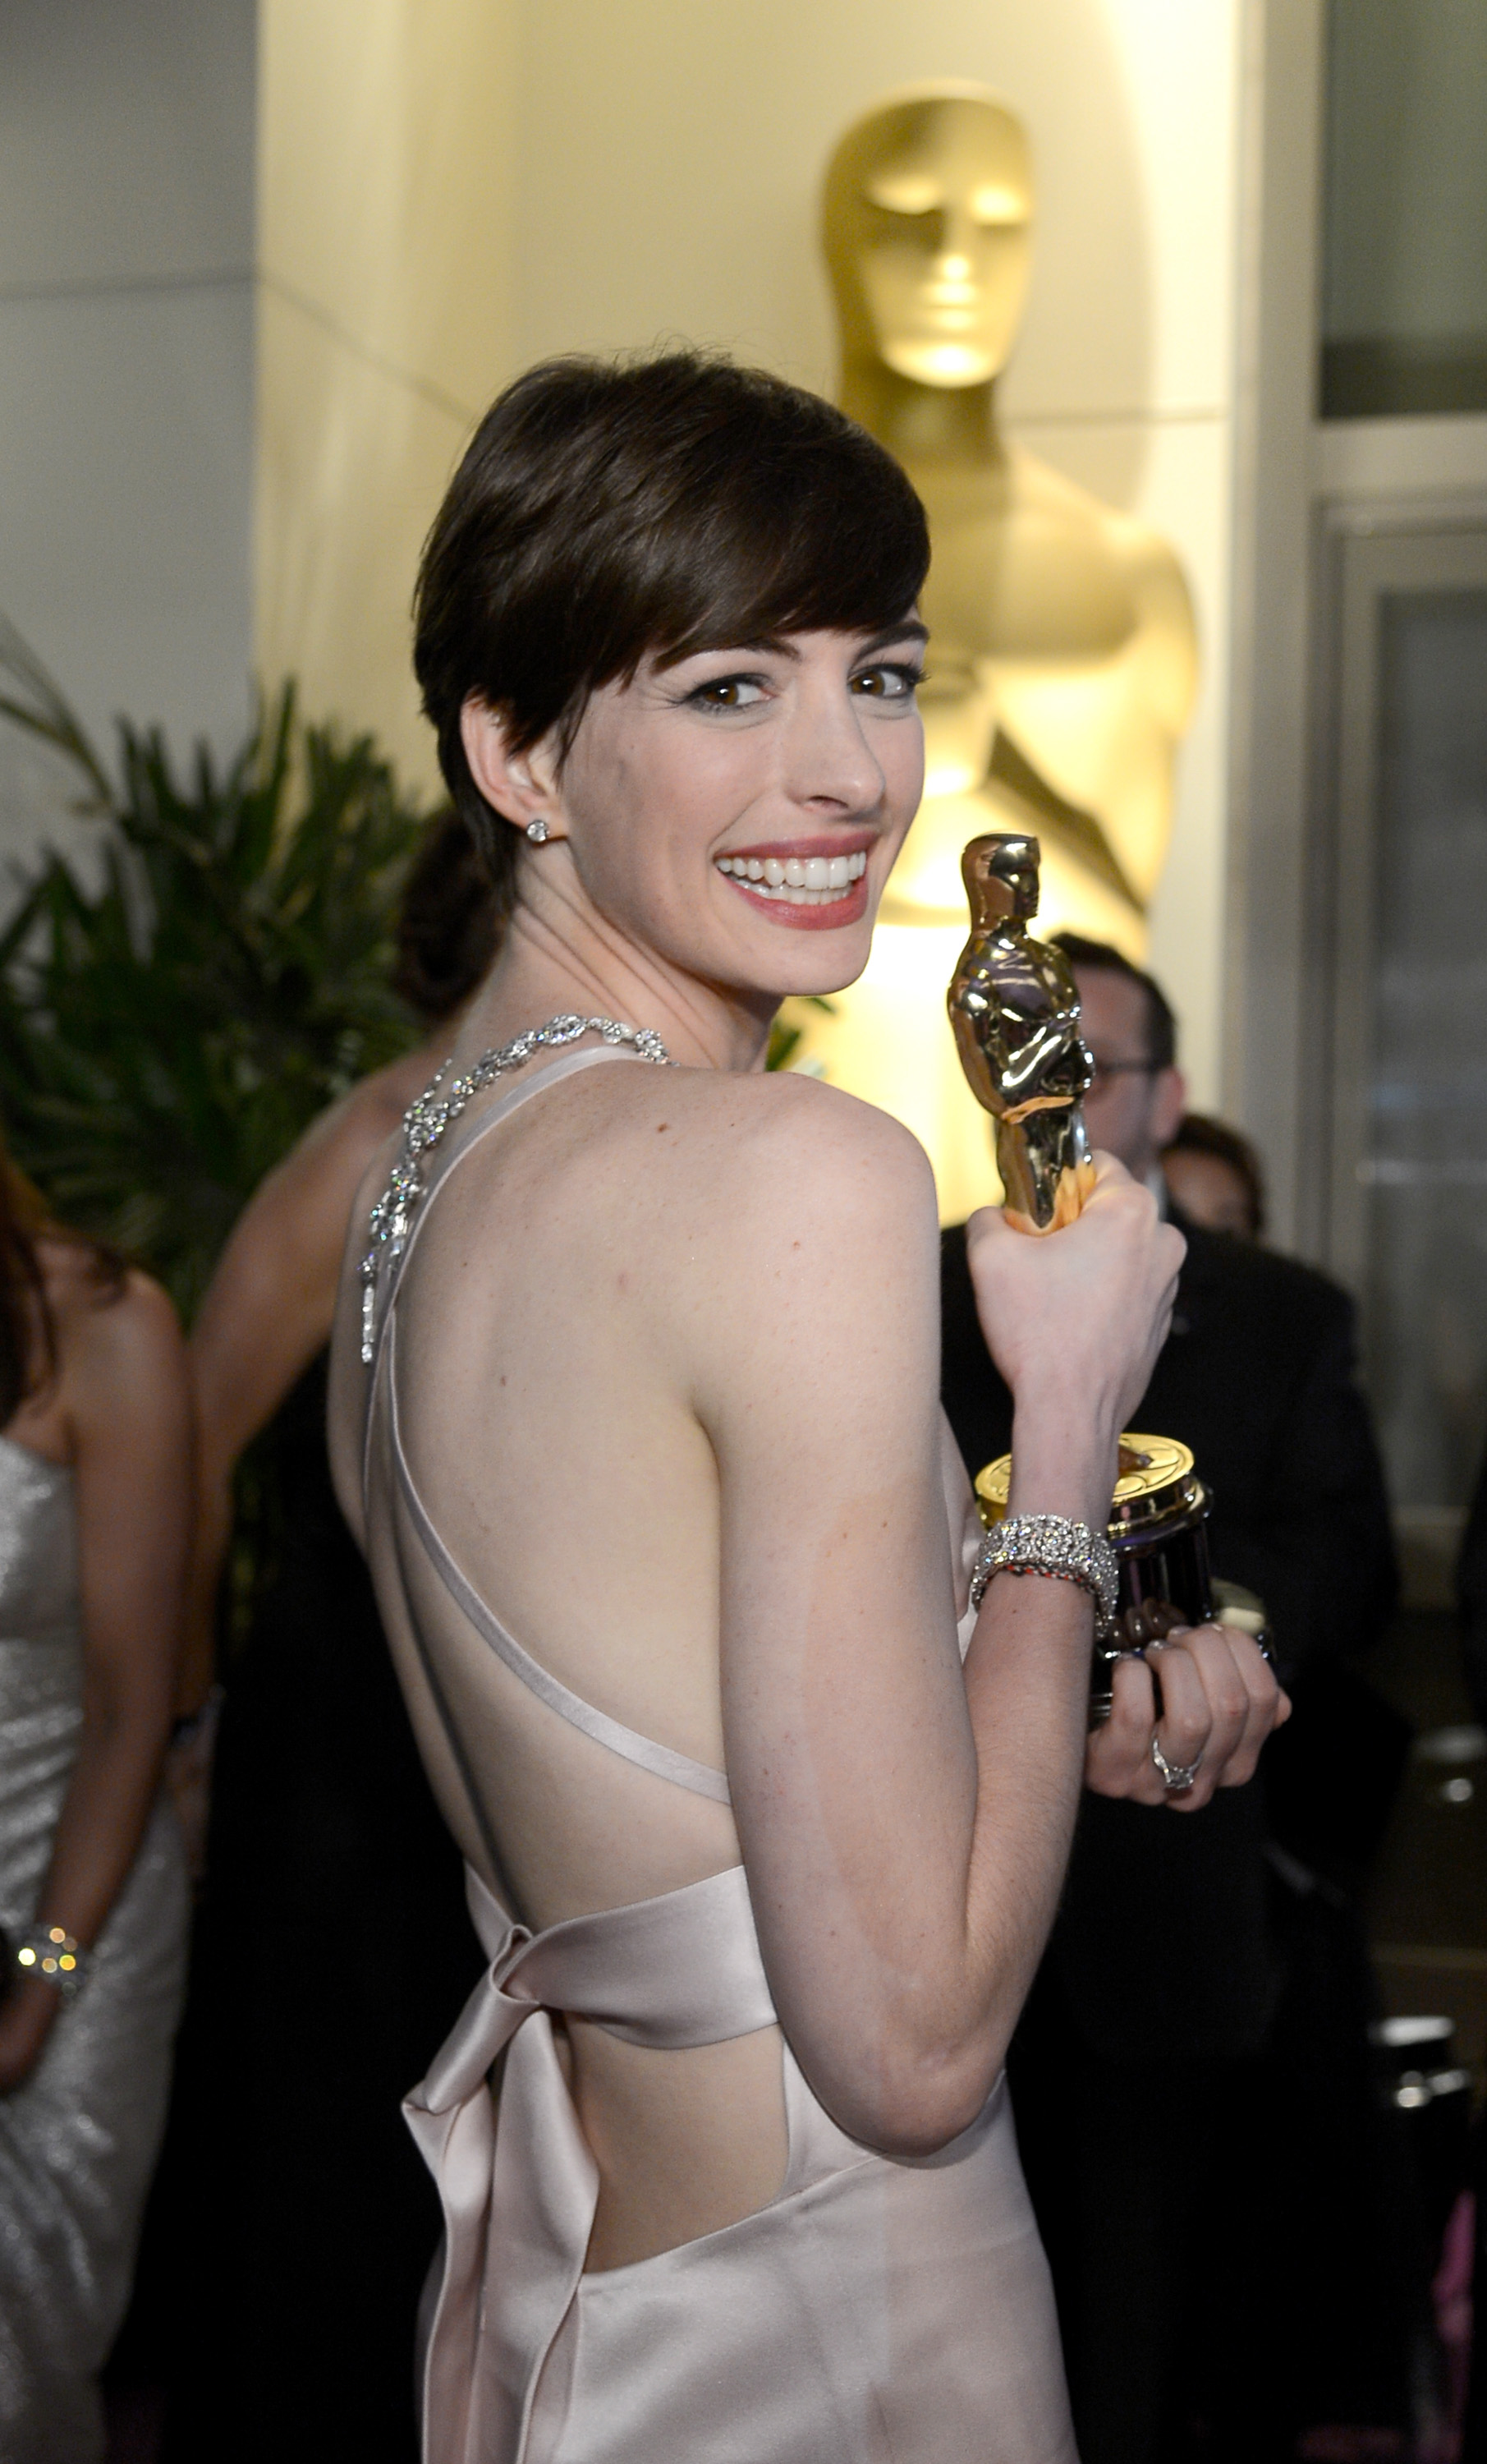 Anne Hathaway held up her award at the Governors Ball.